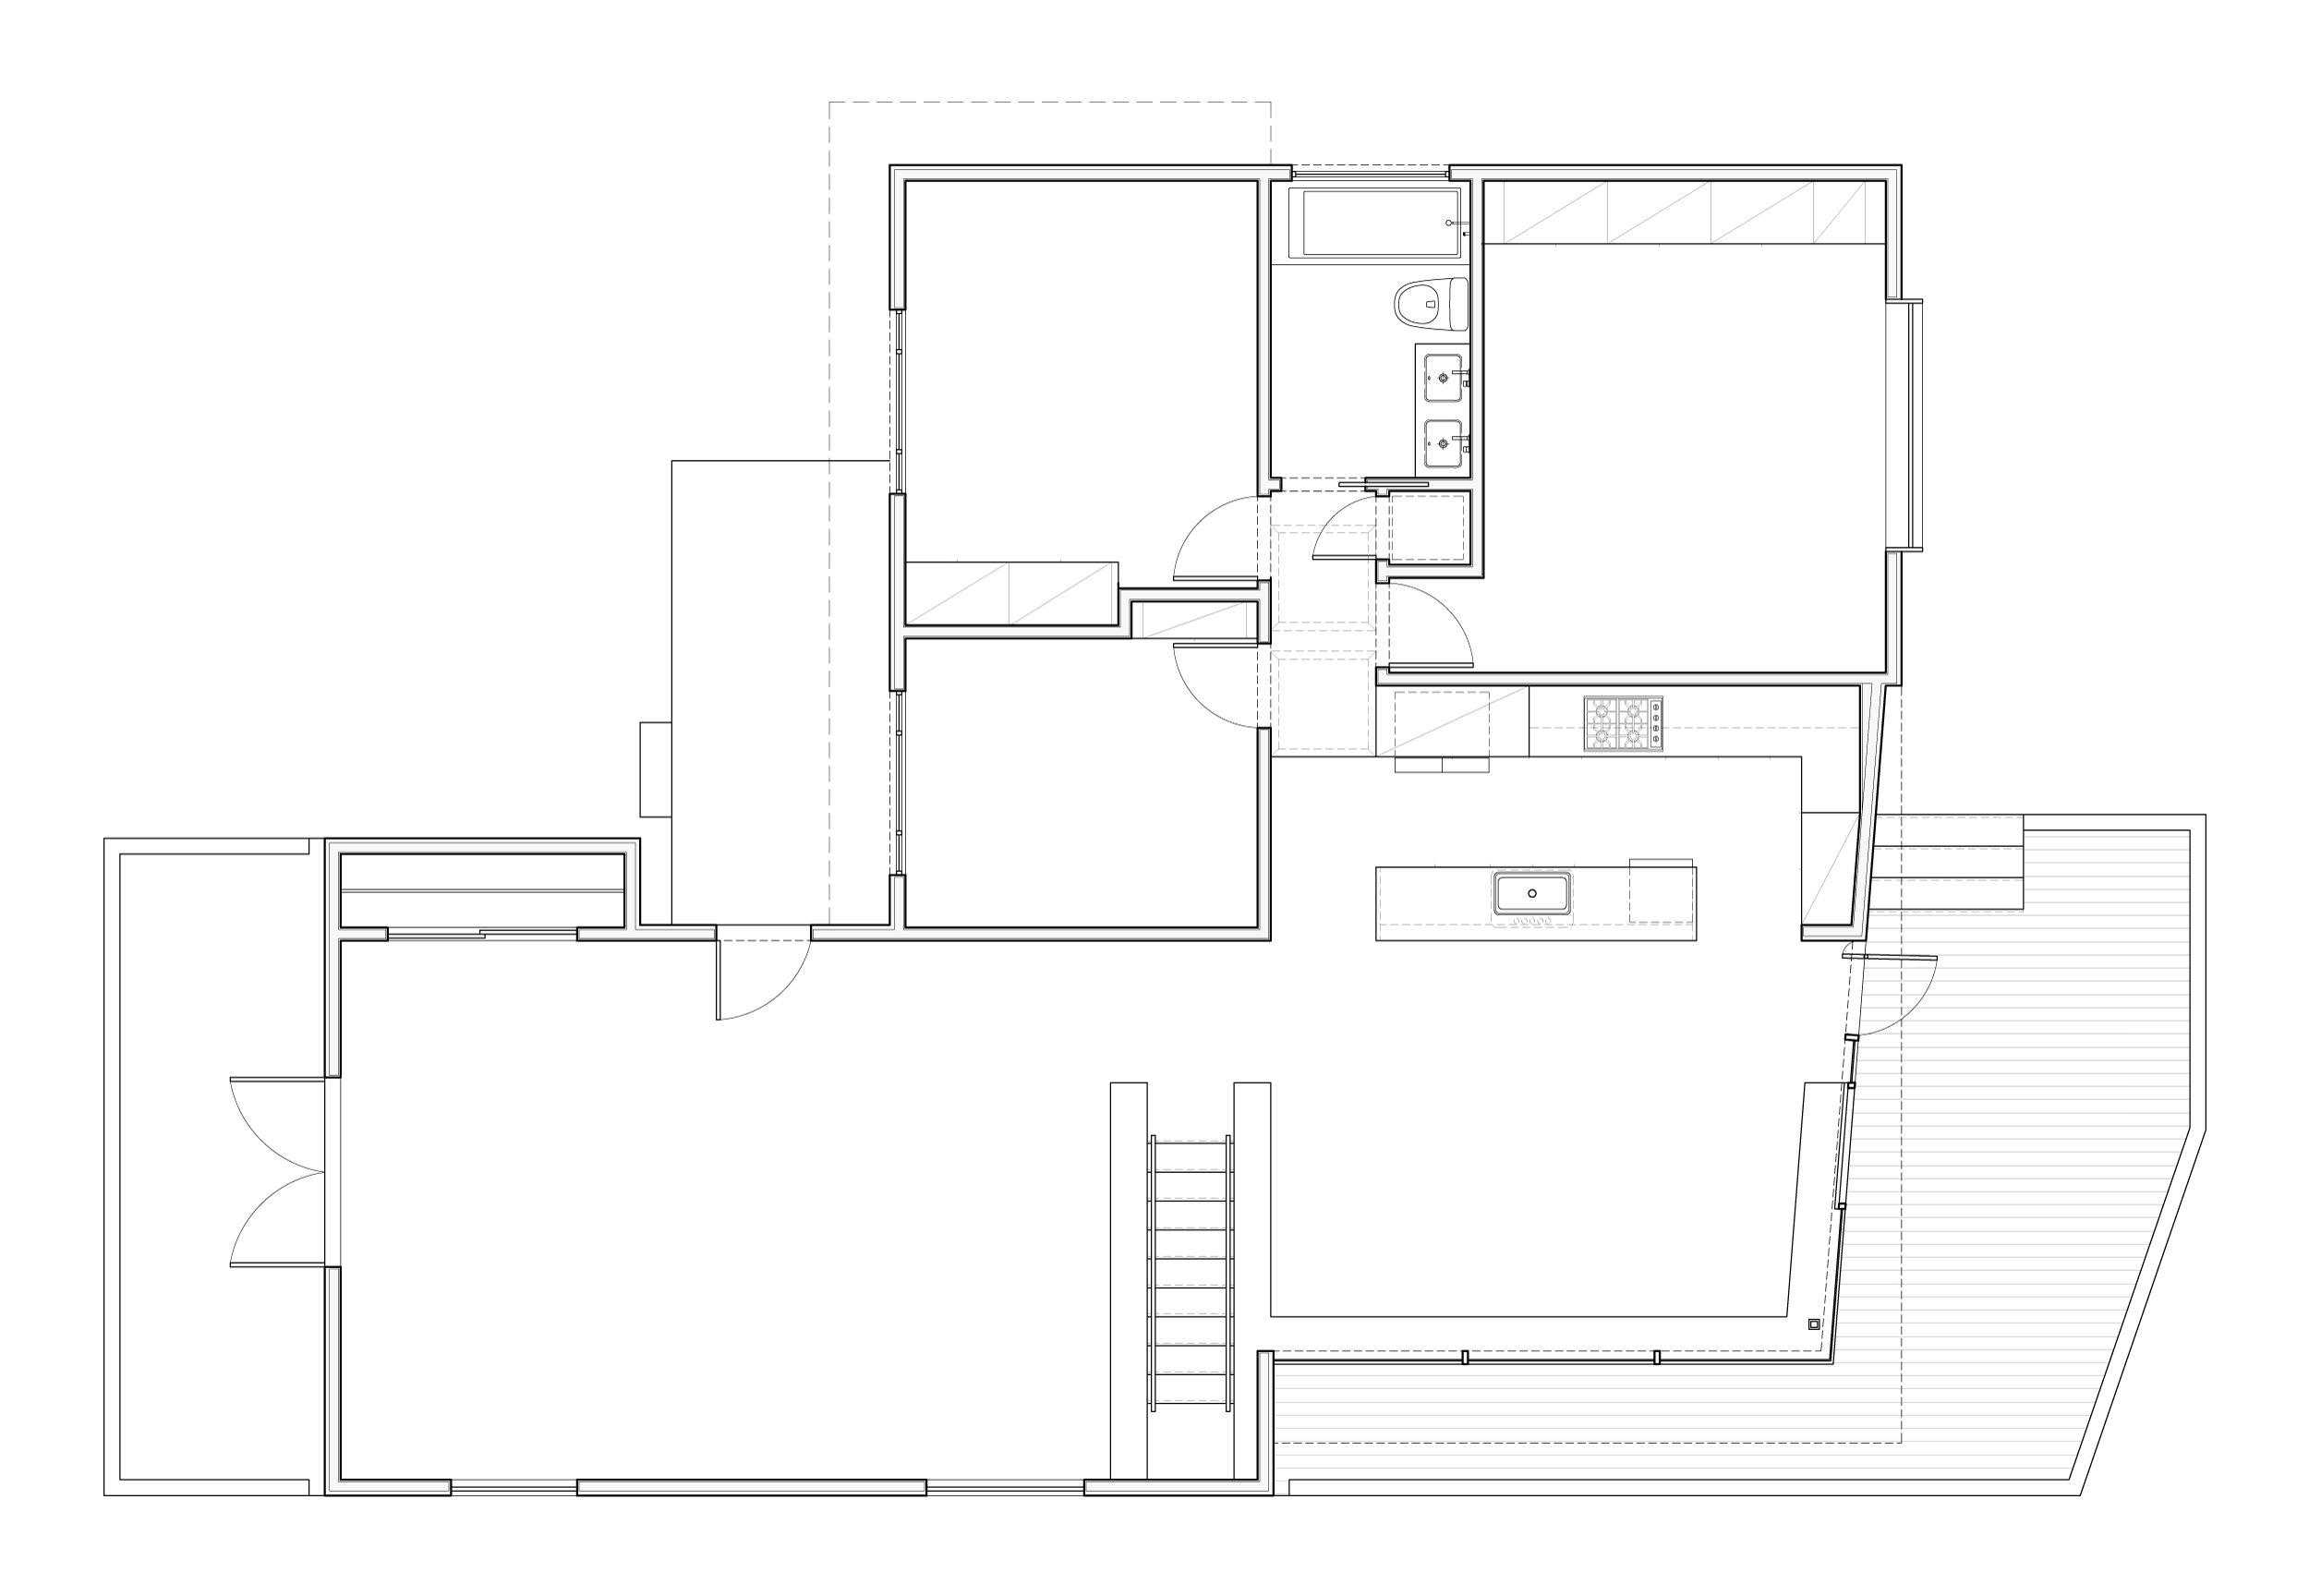 The proposed plan showing the addition which connects the living room to the  dining room and kitchen seamlessly.